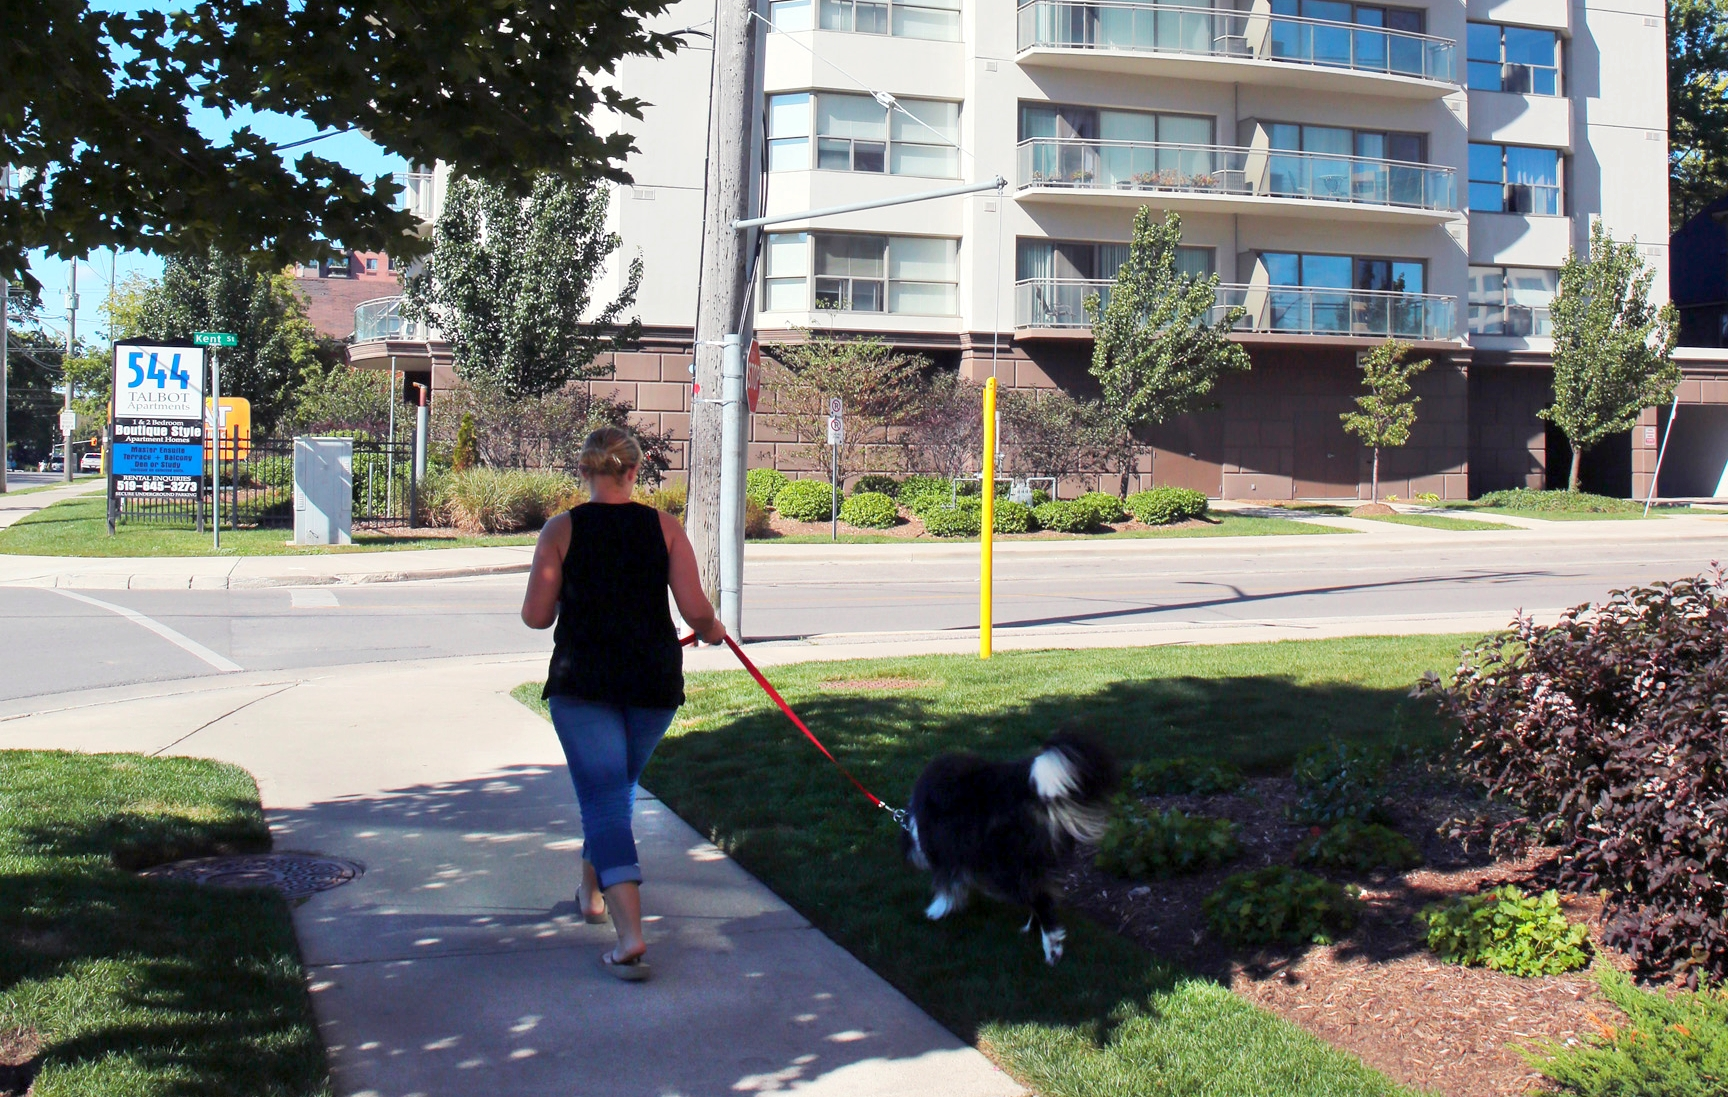 woman walking her dog in the park near 544 Talbot Street